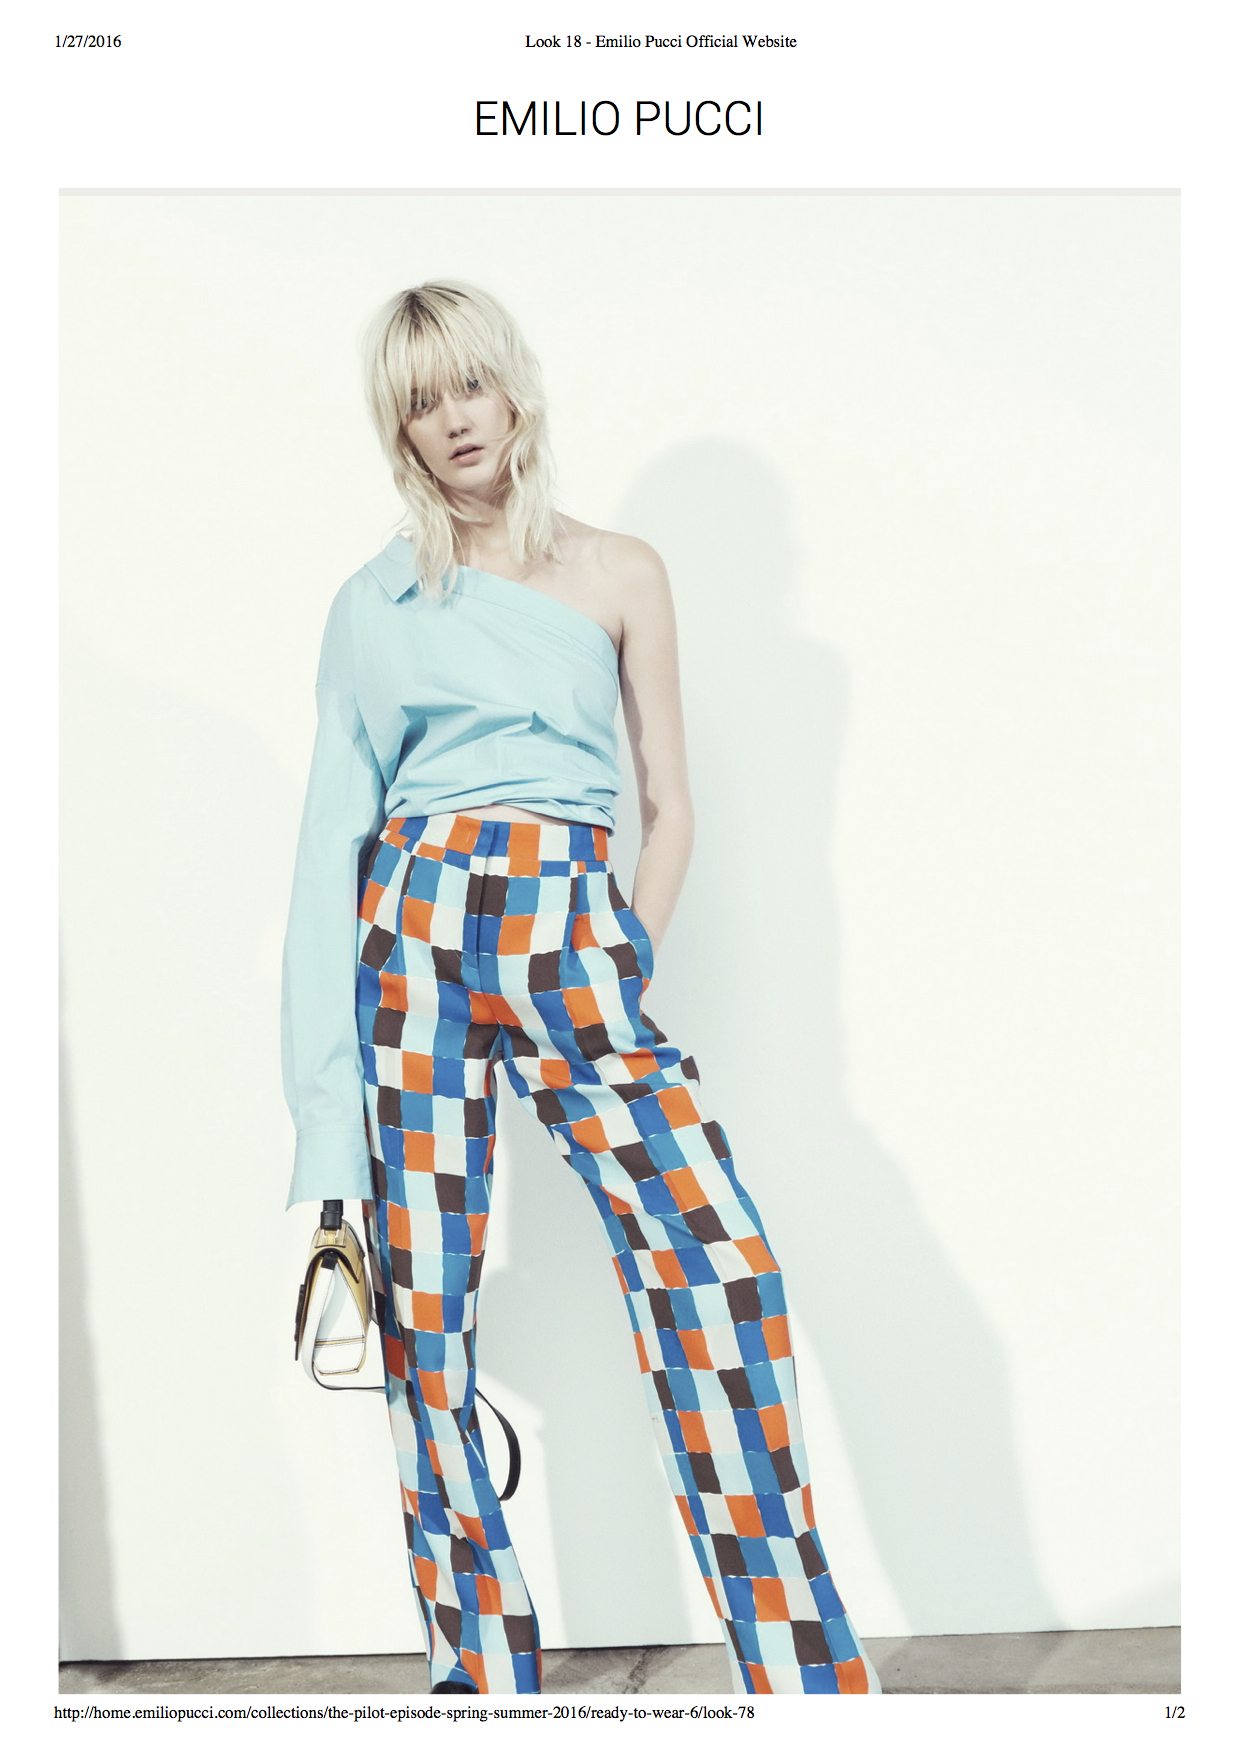 Look 18 - Emilio Pucci Official Website